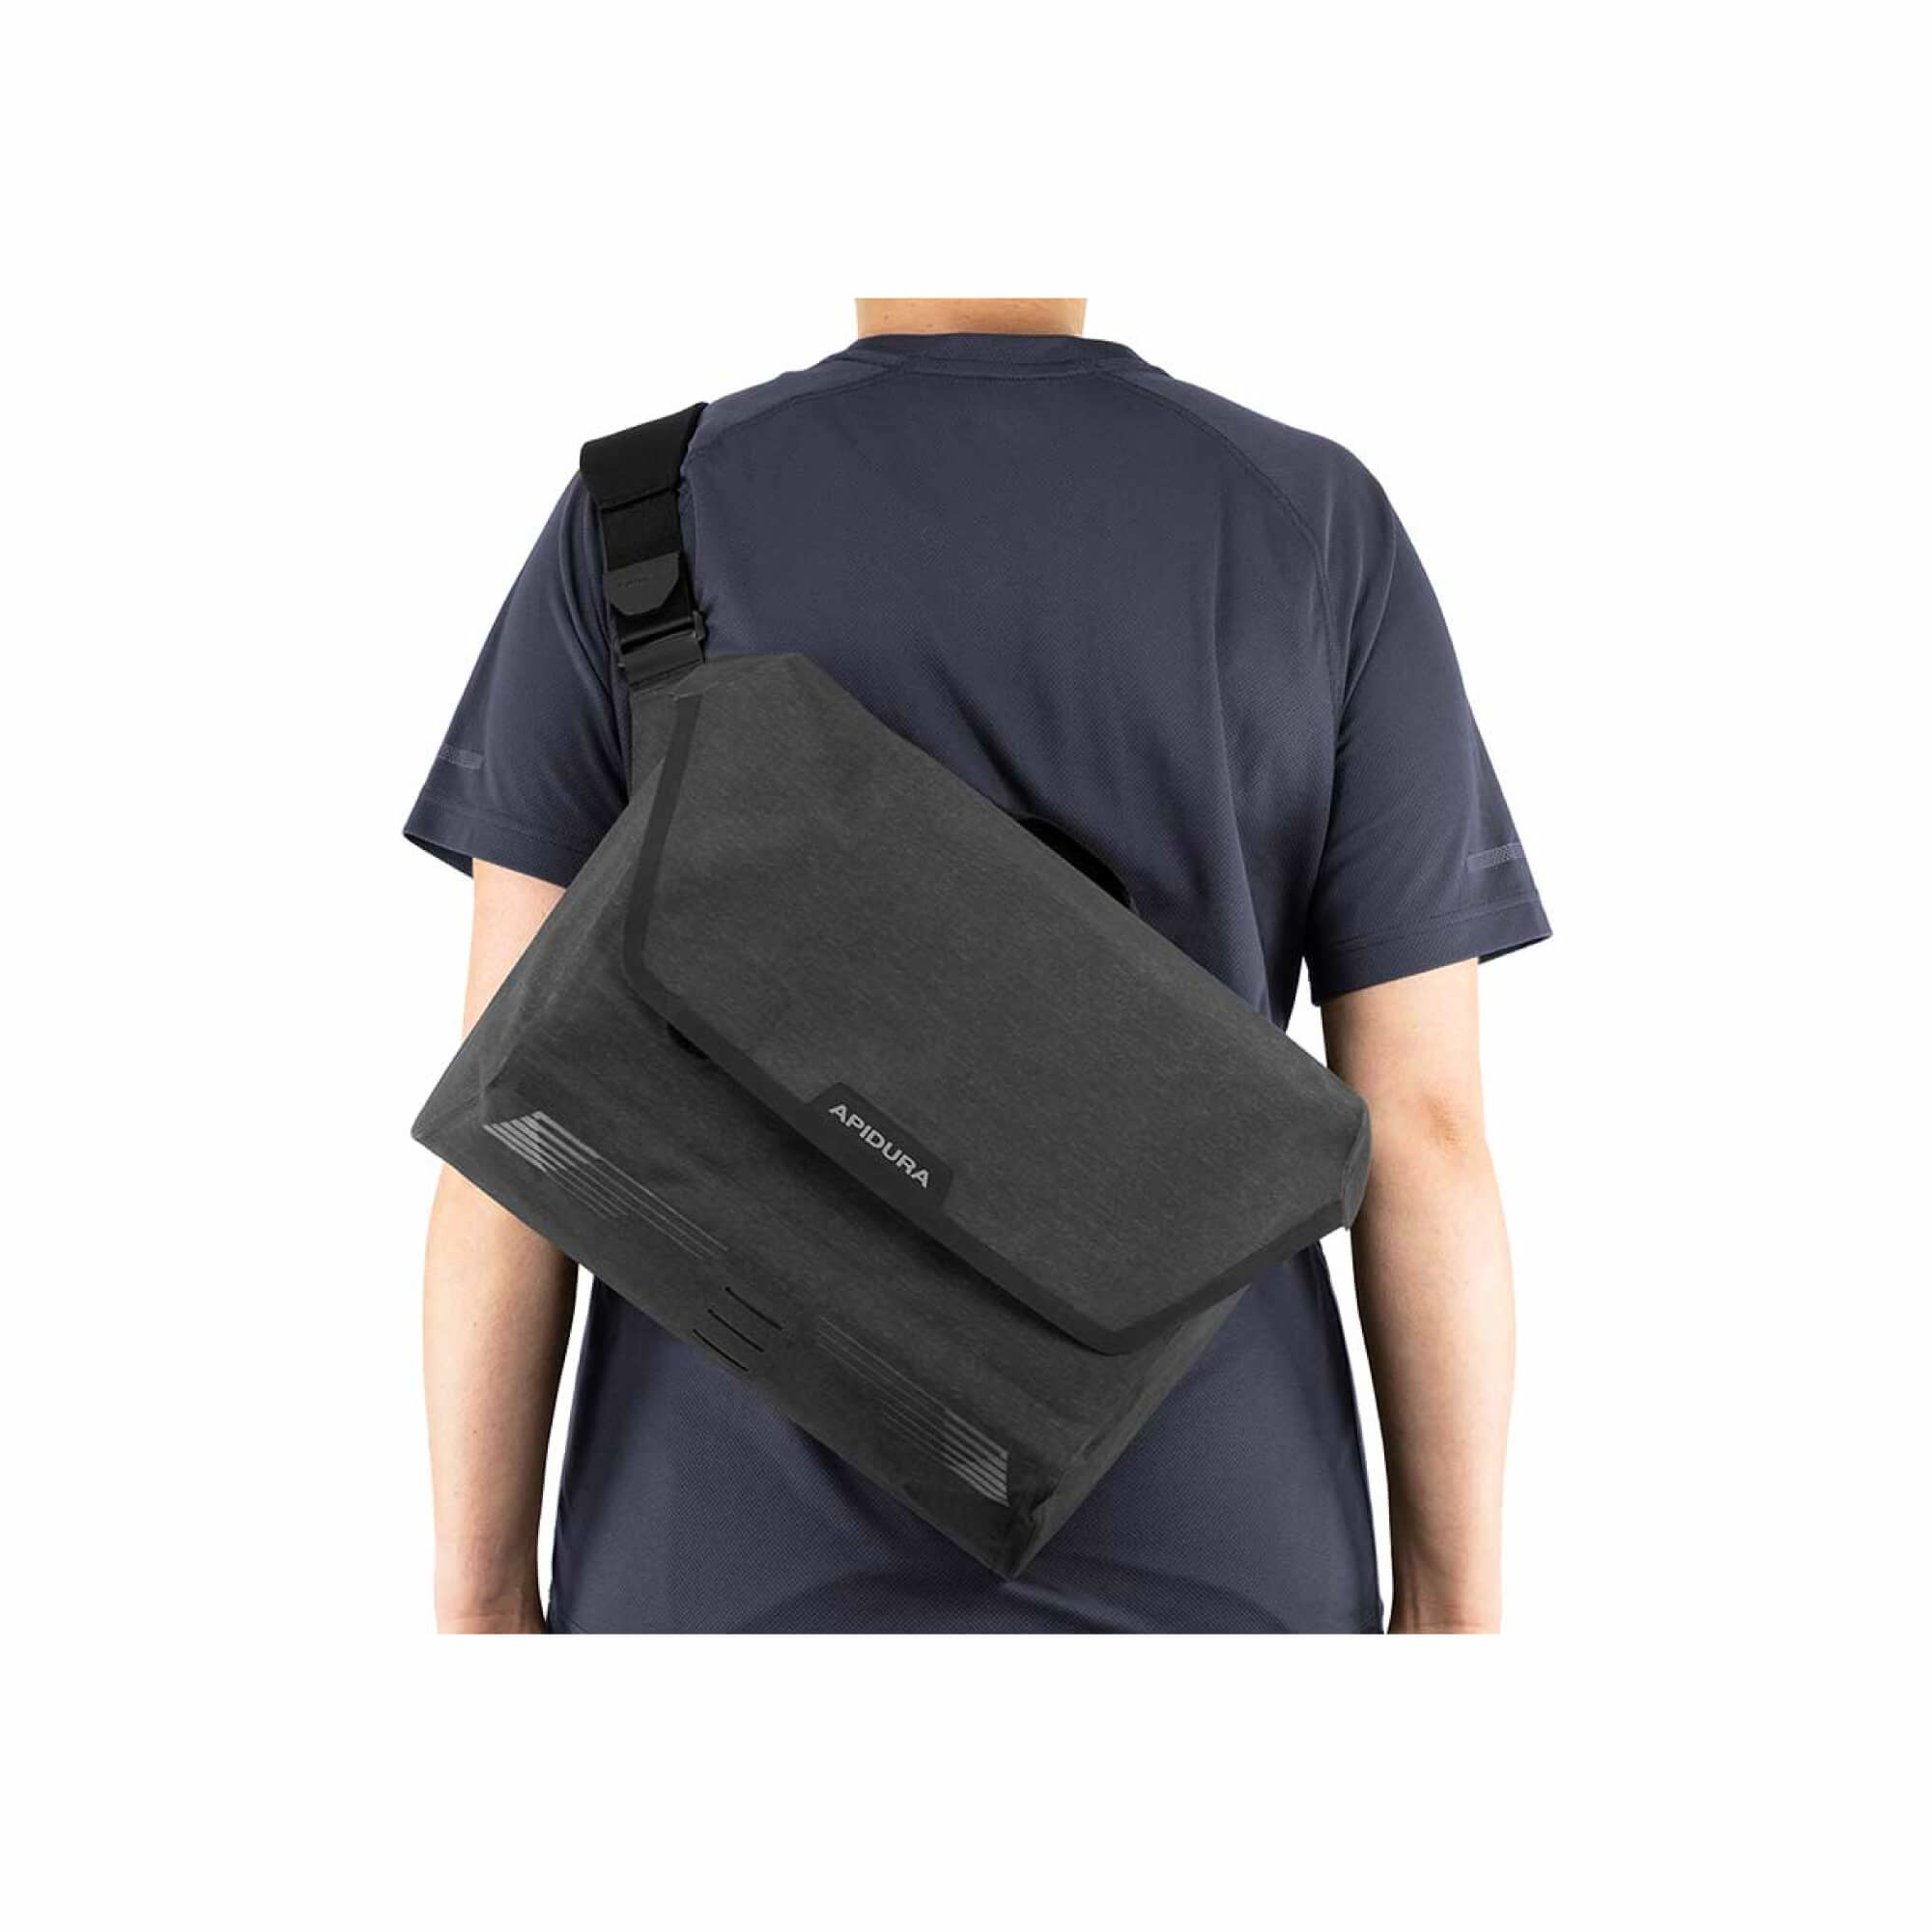 City Messenger 13 inches-6